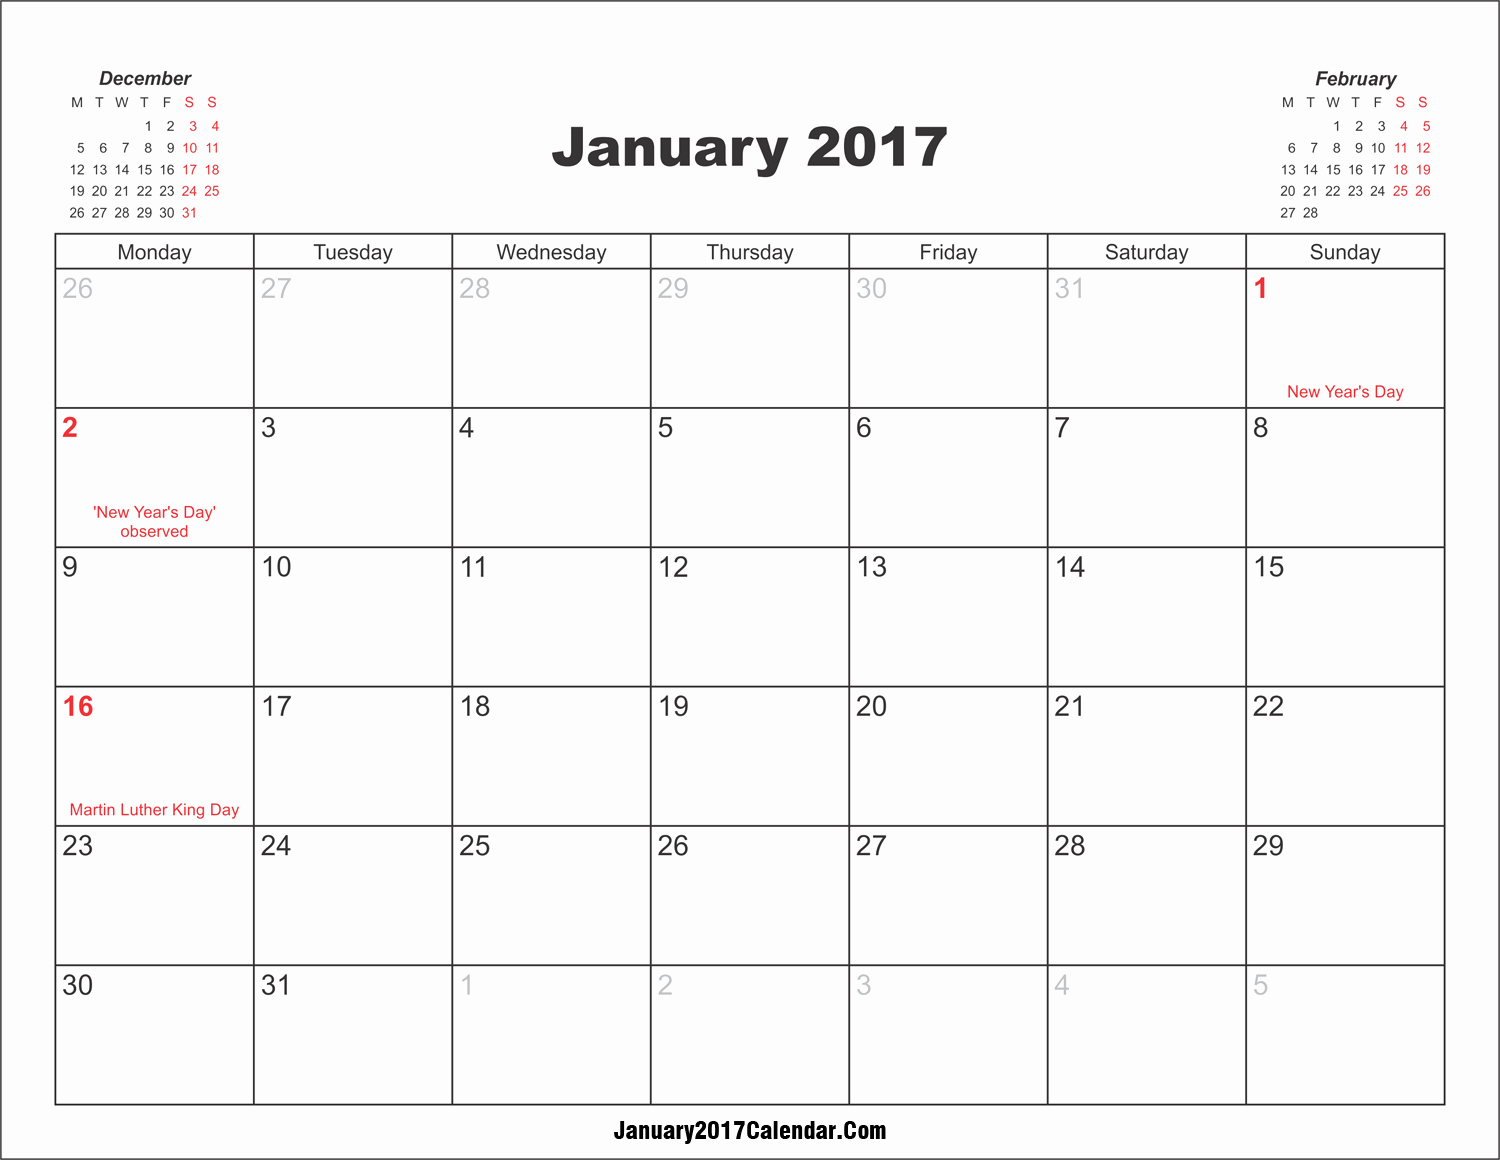 2017 Calendar with Holidays Template Luxury January 2017 Calendar with Holidays